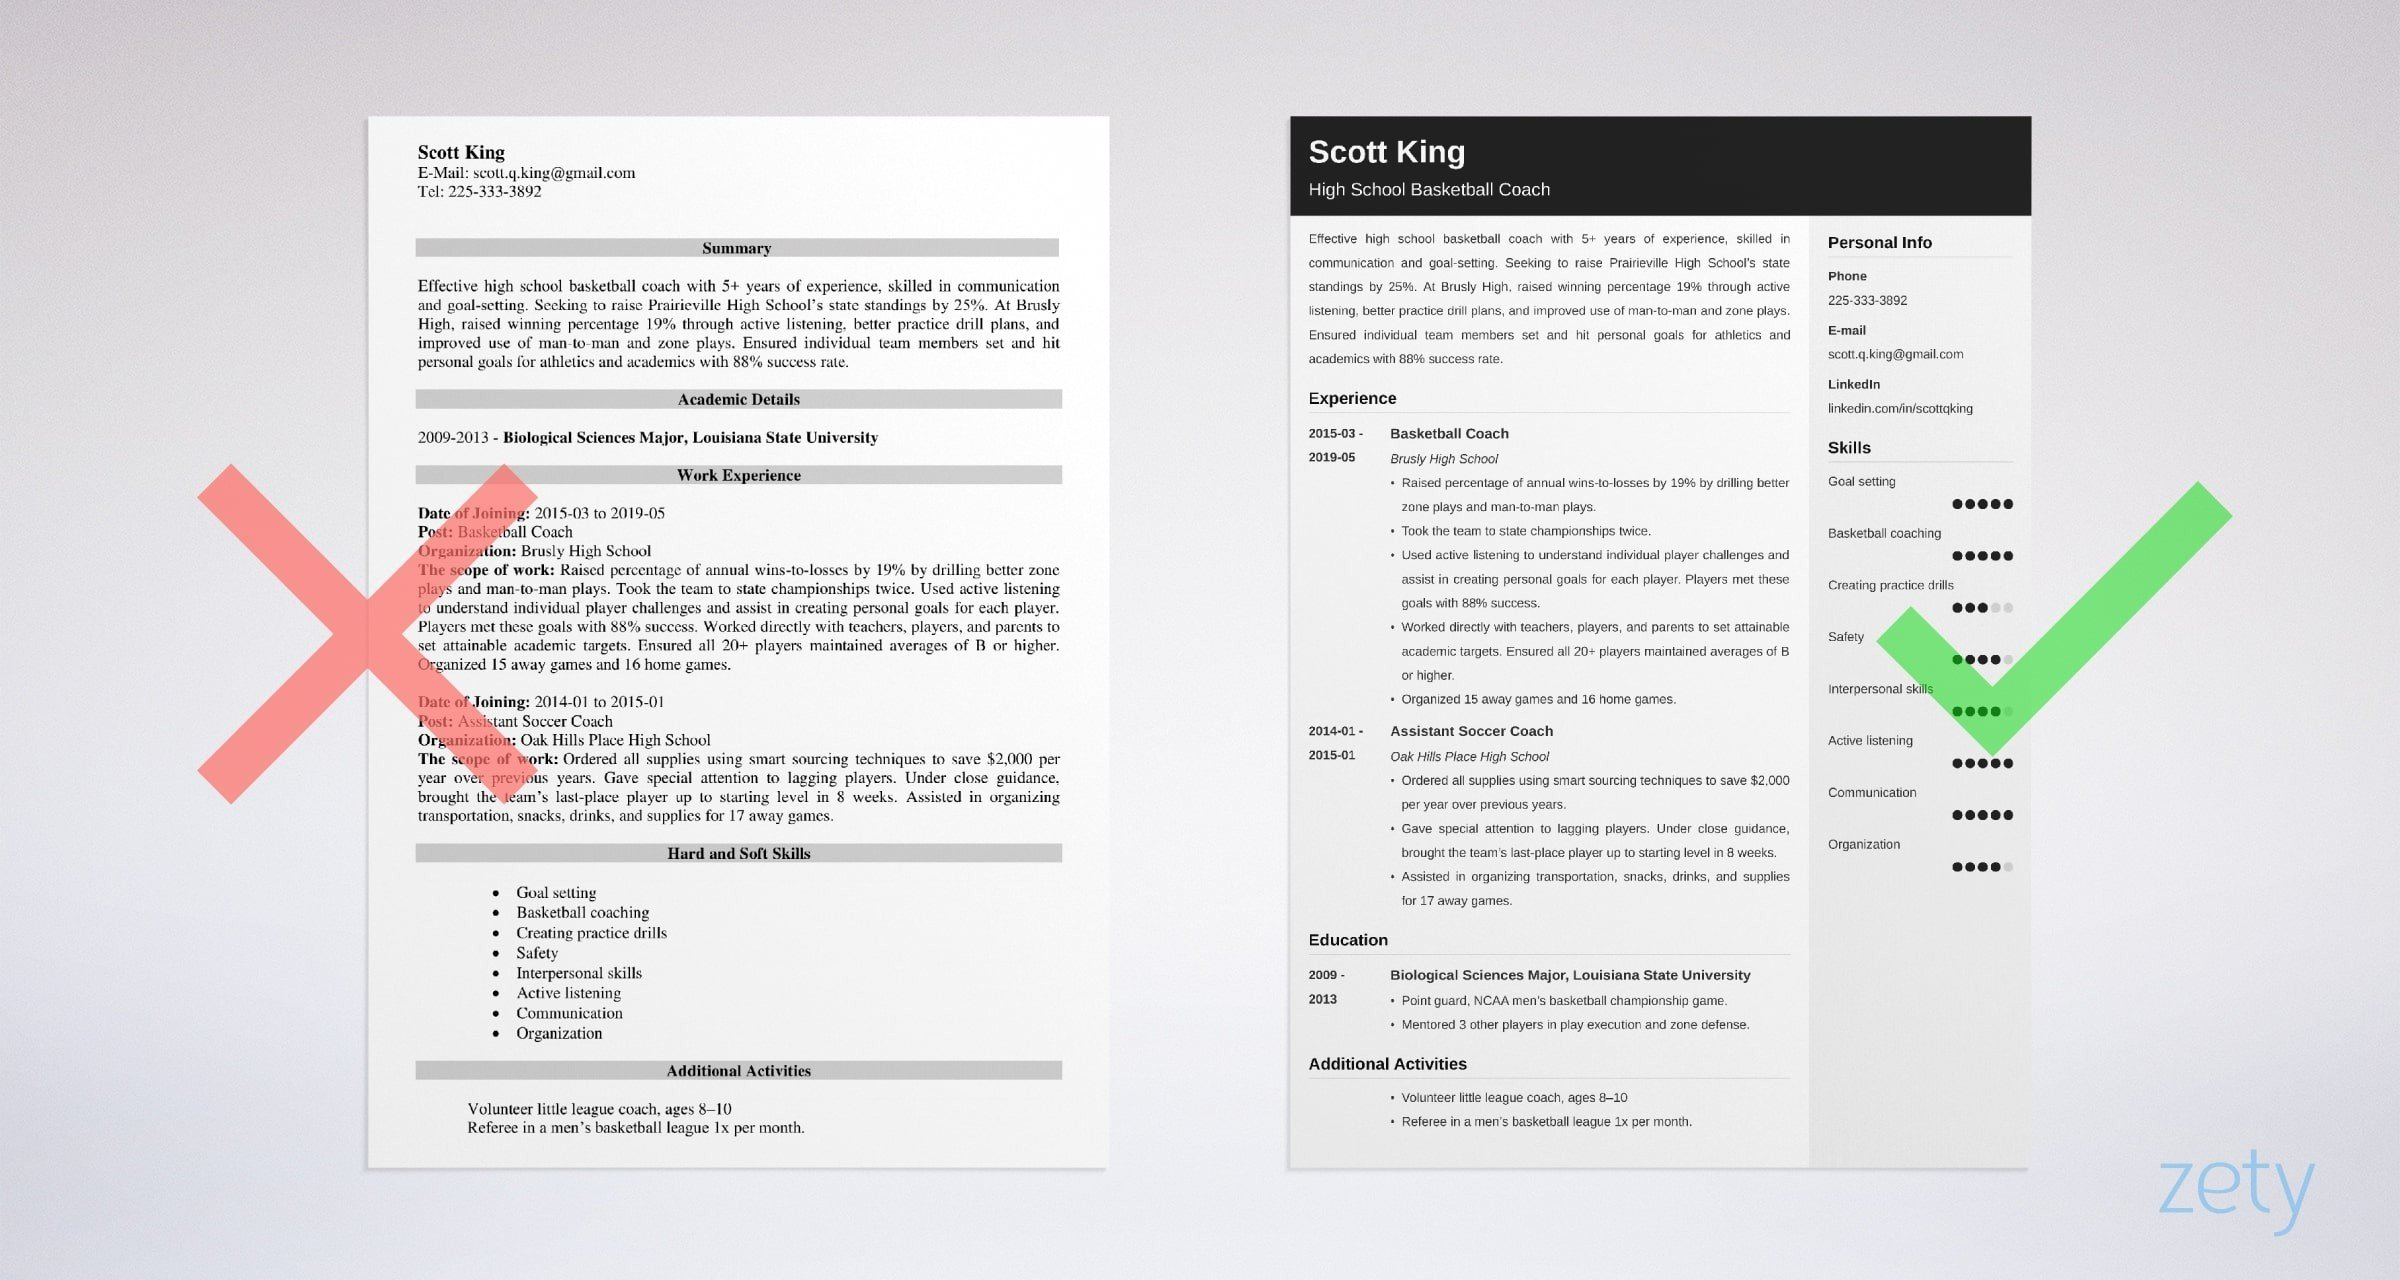 coaching resume samples also for high school coach jobs professional example free Resume Professional Coaching Resume